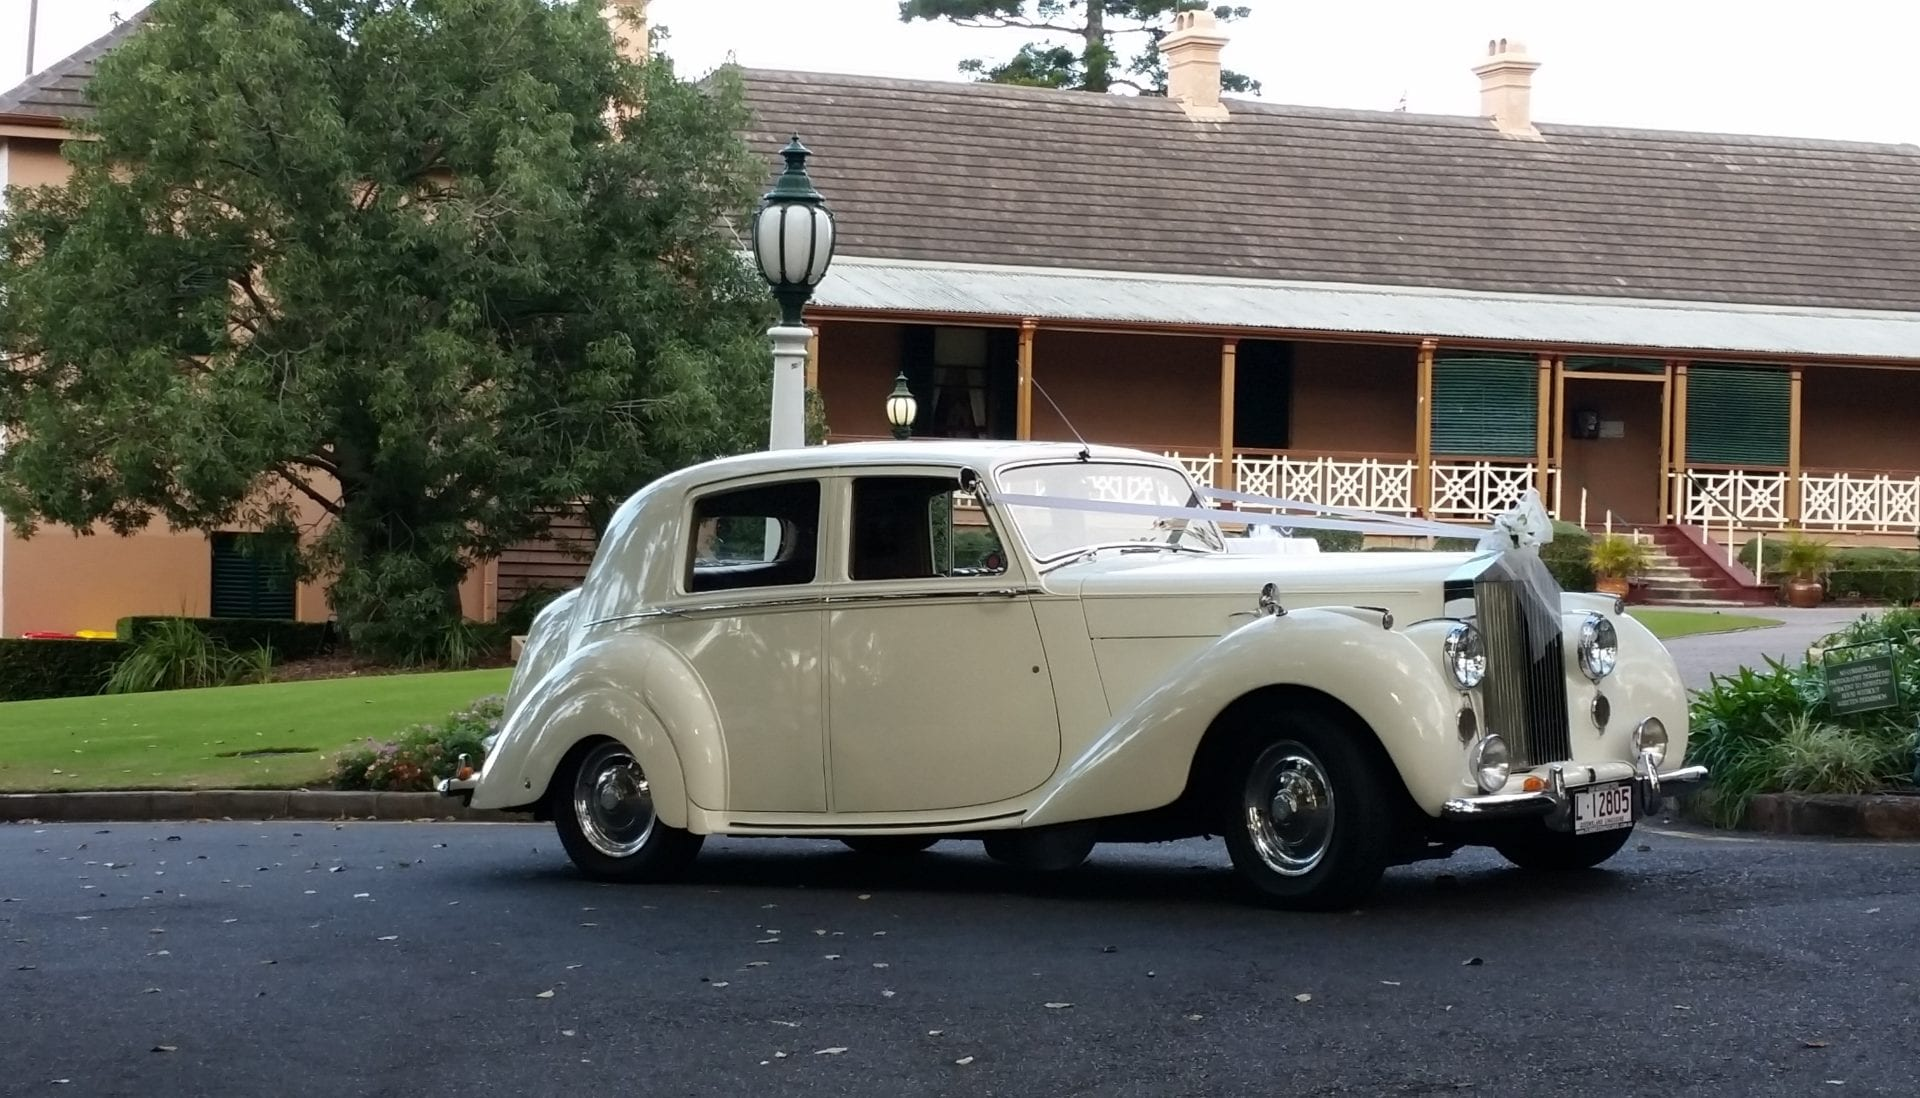 emily 1948 rolls royce silver dawn classic wedding car. Black Bedroom Furniture Sets. Home Design Ideas